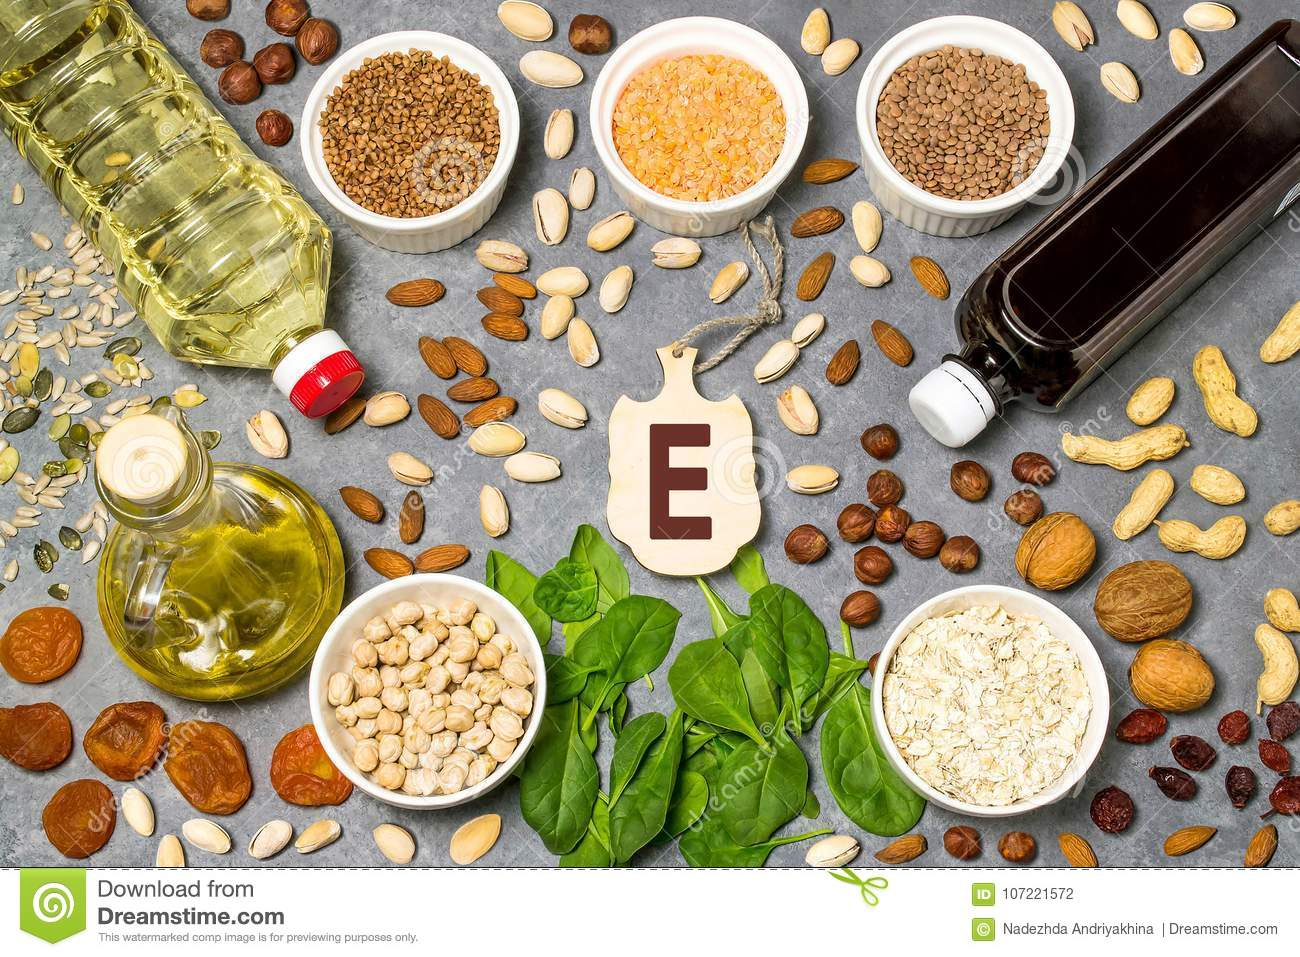 Food is source of vitamin E